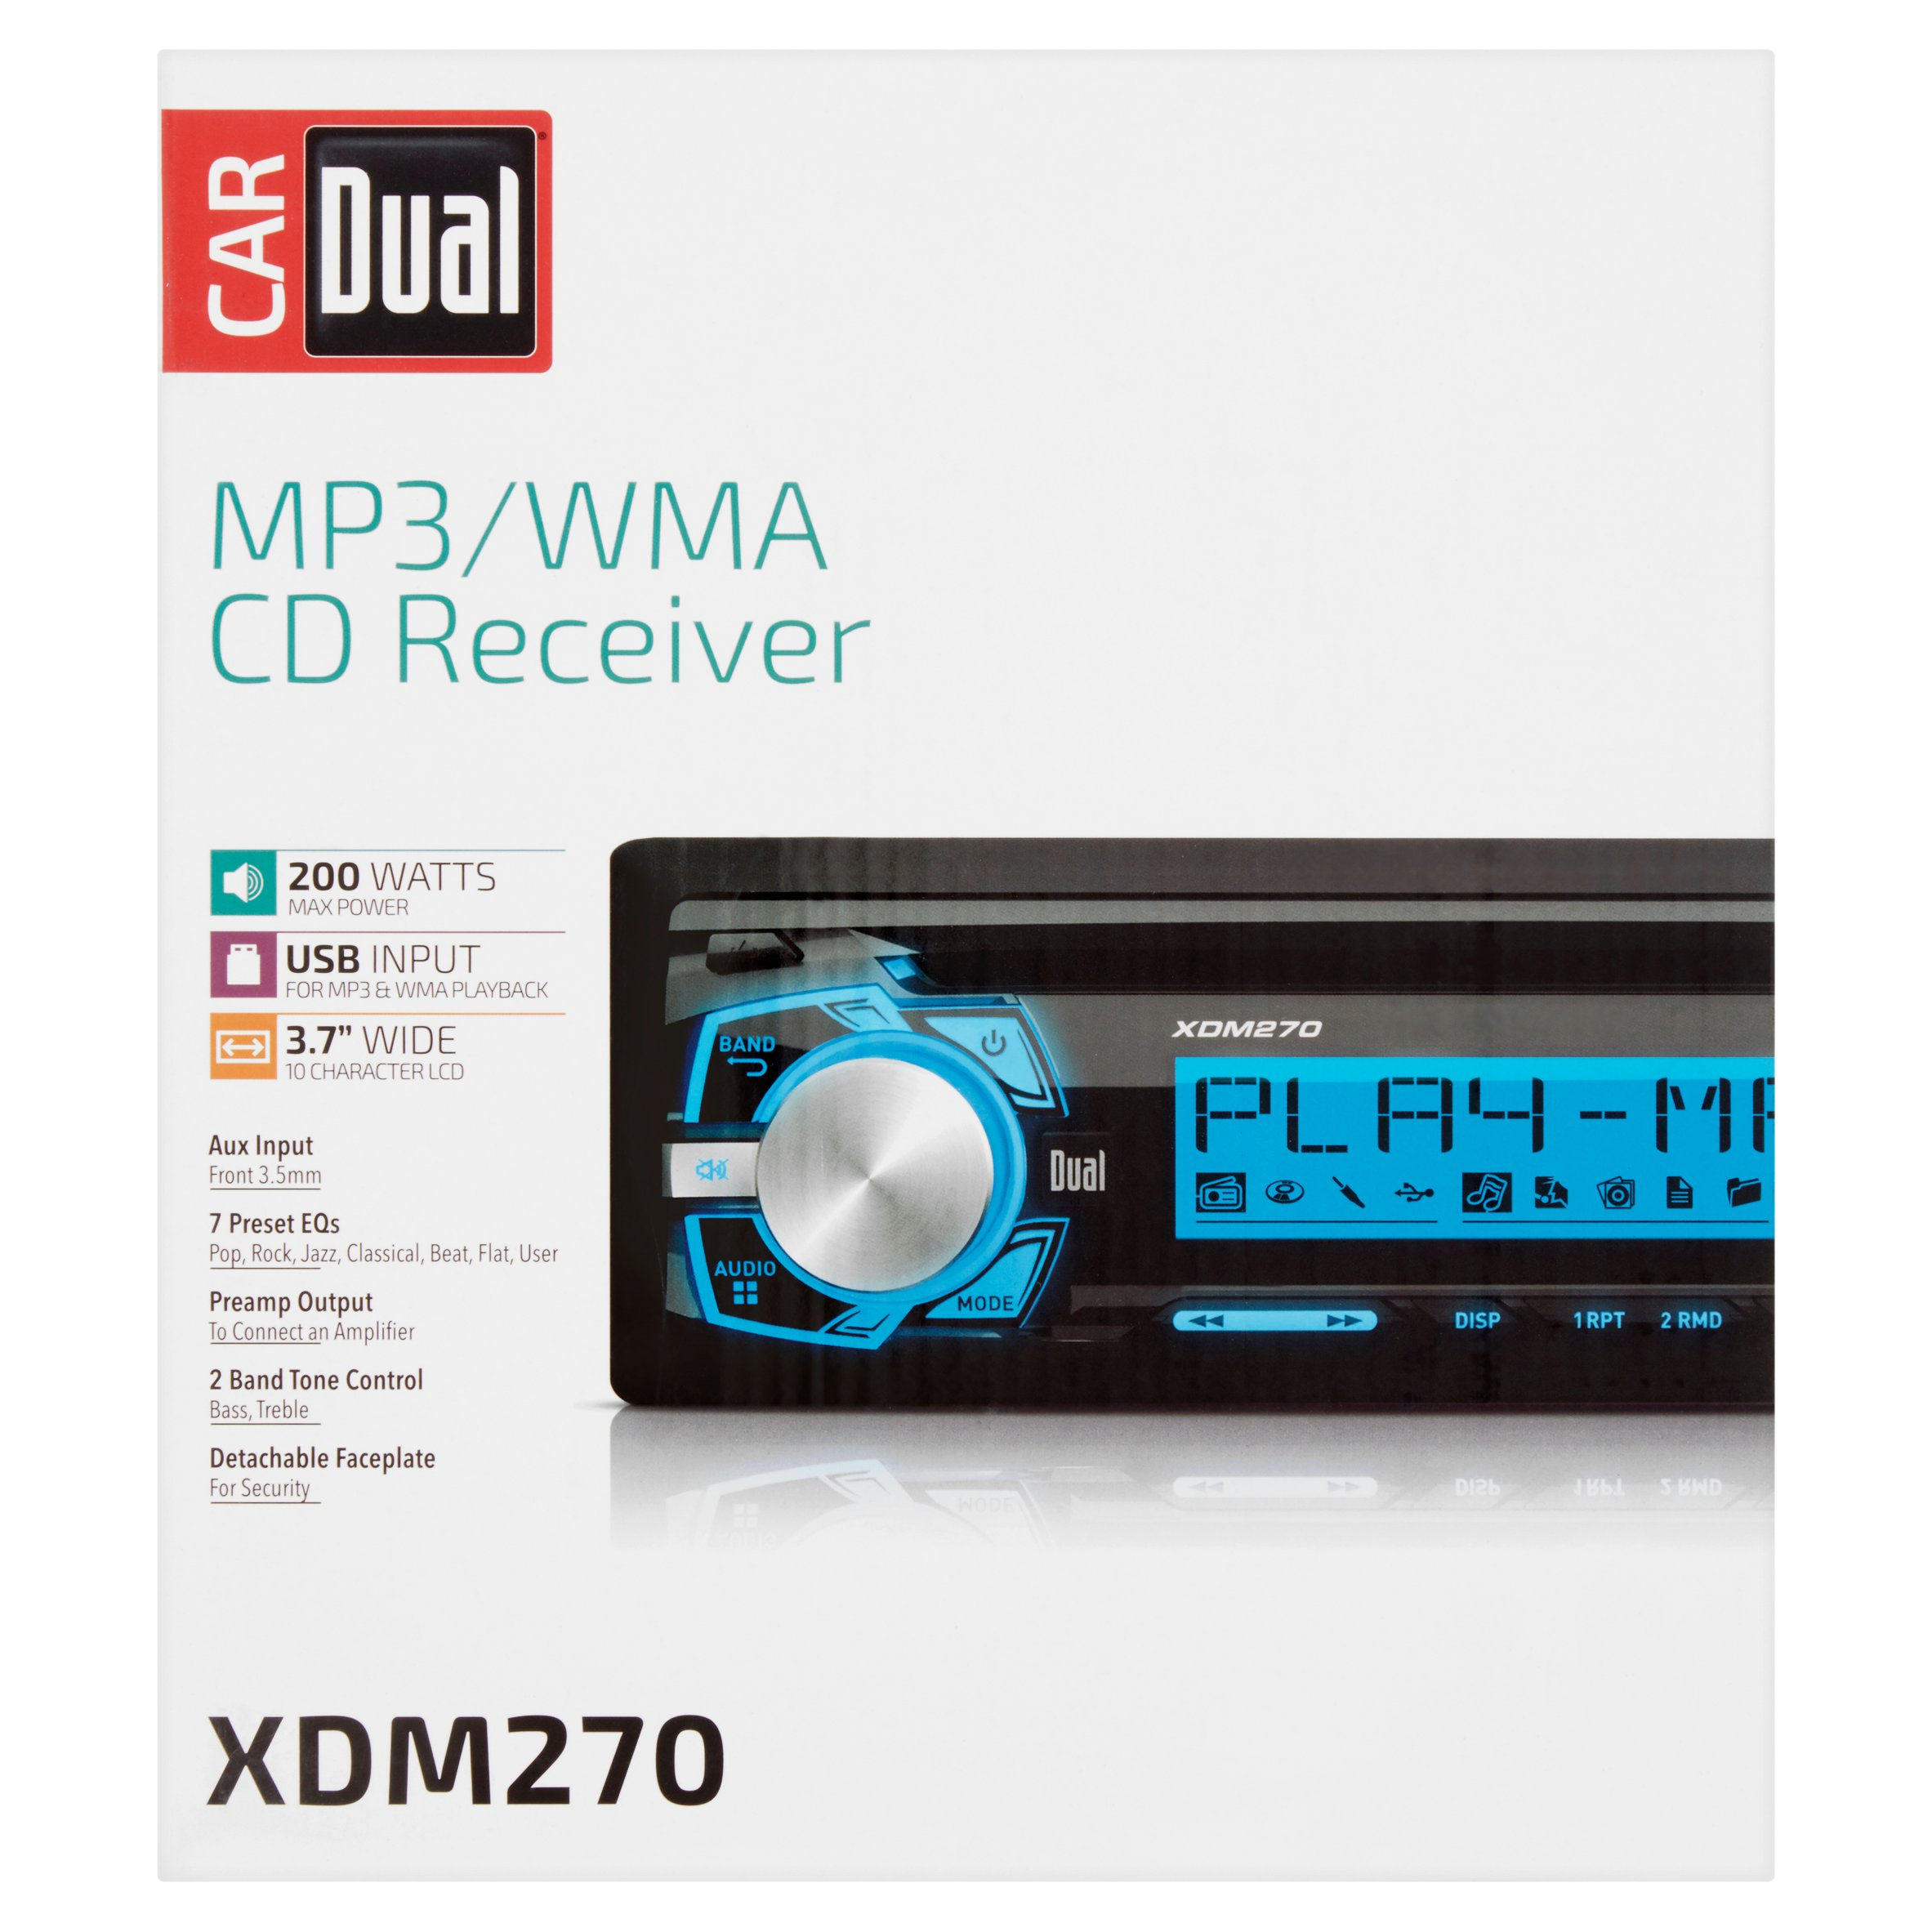 Car Dual XDM270 MP3/WMA CD Receiver